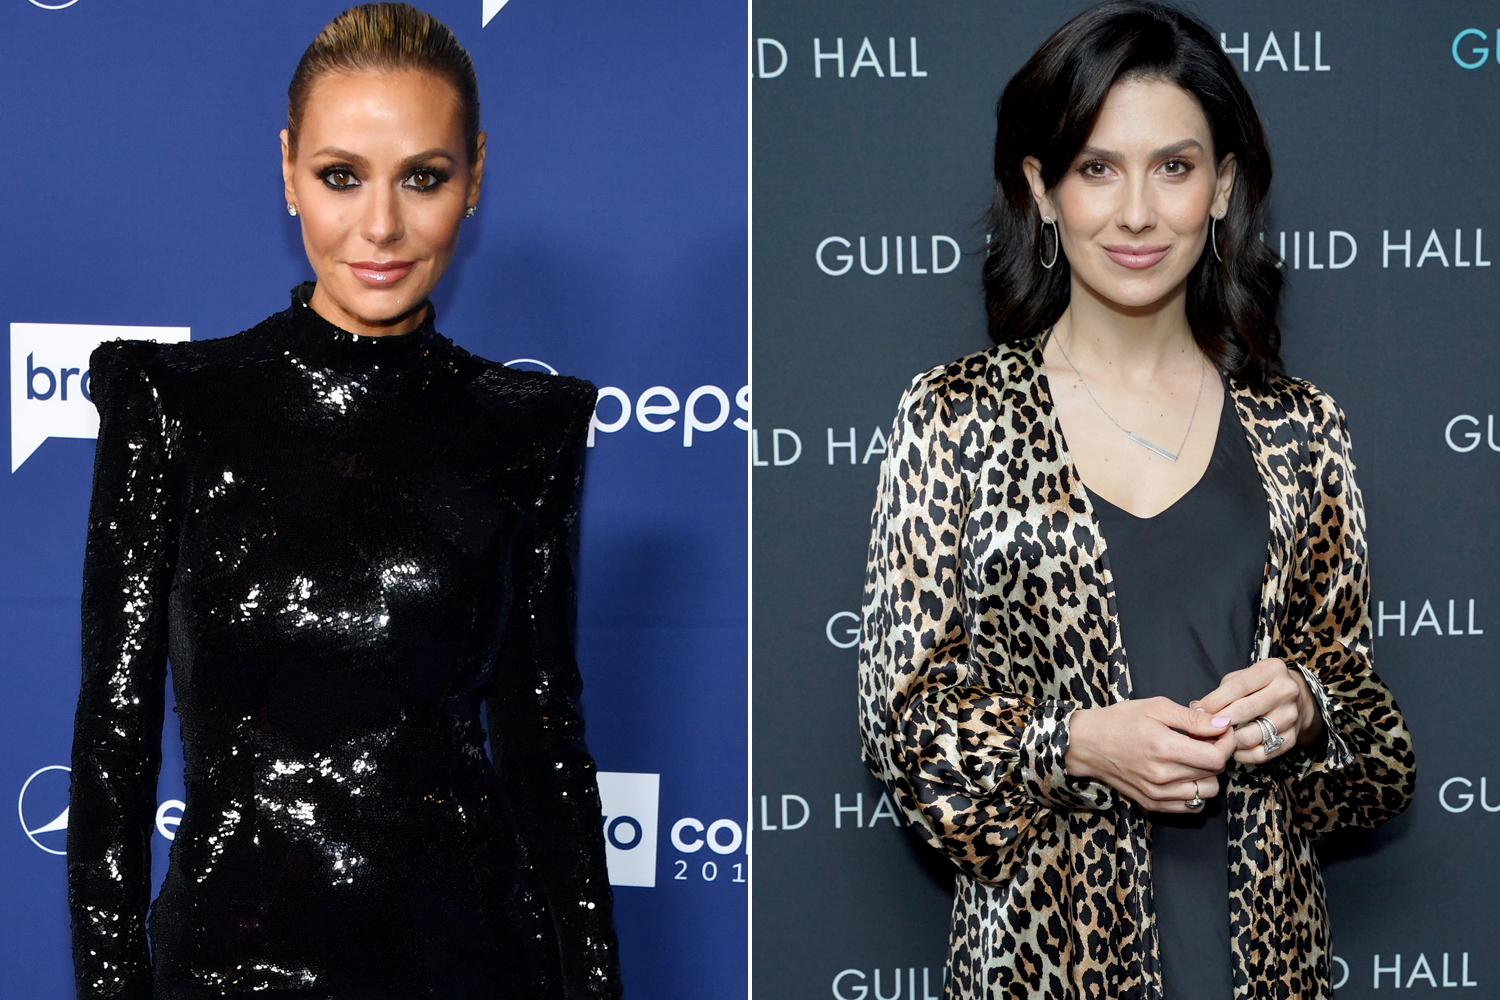 Dorit Kemsley weighs in on Hilaria Baldwin accent drama